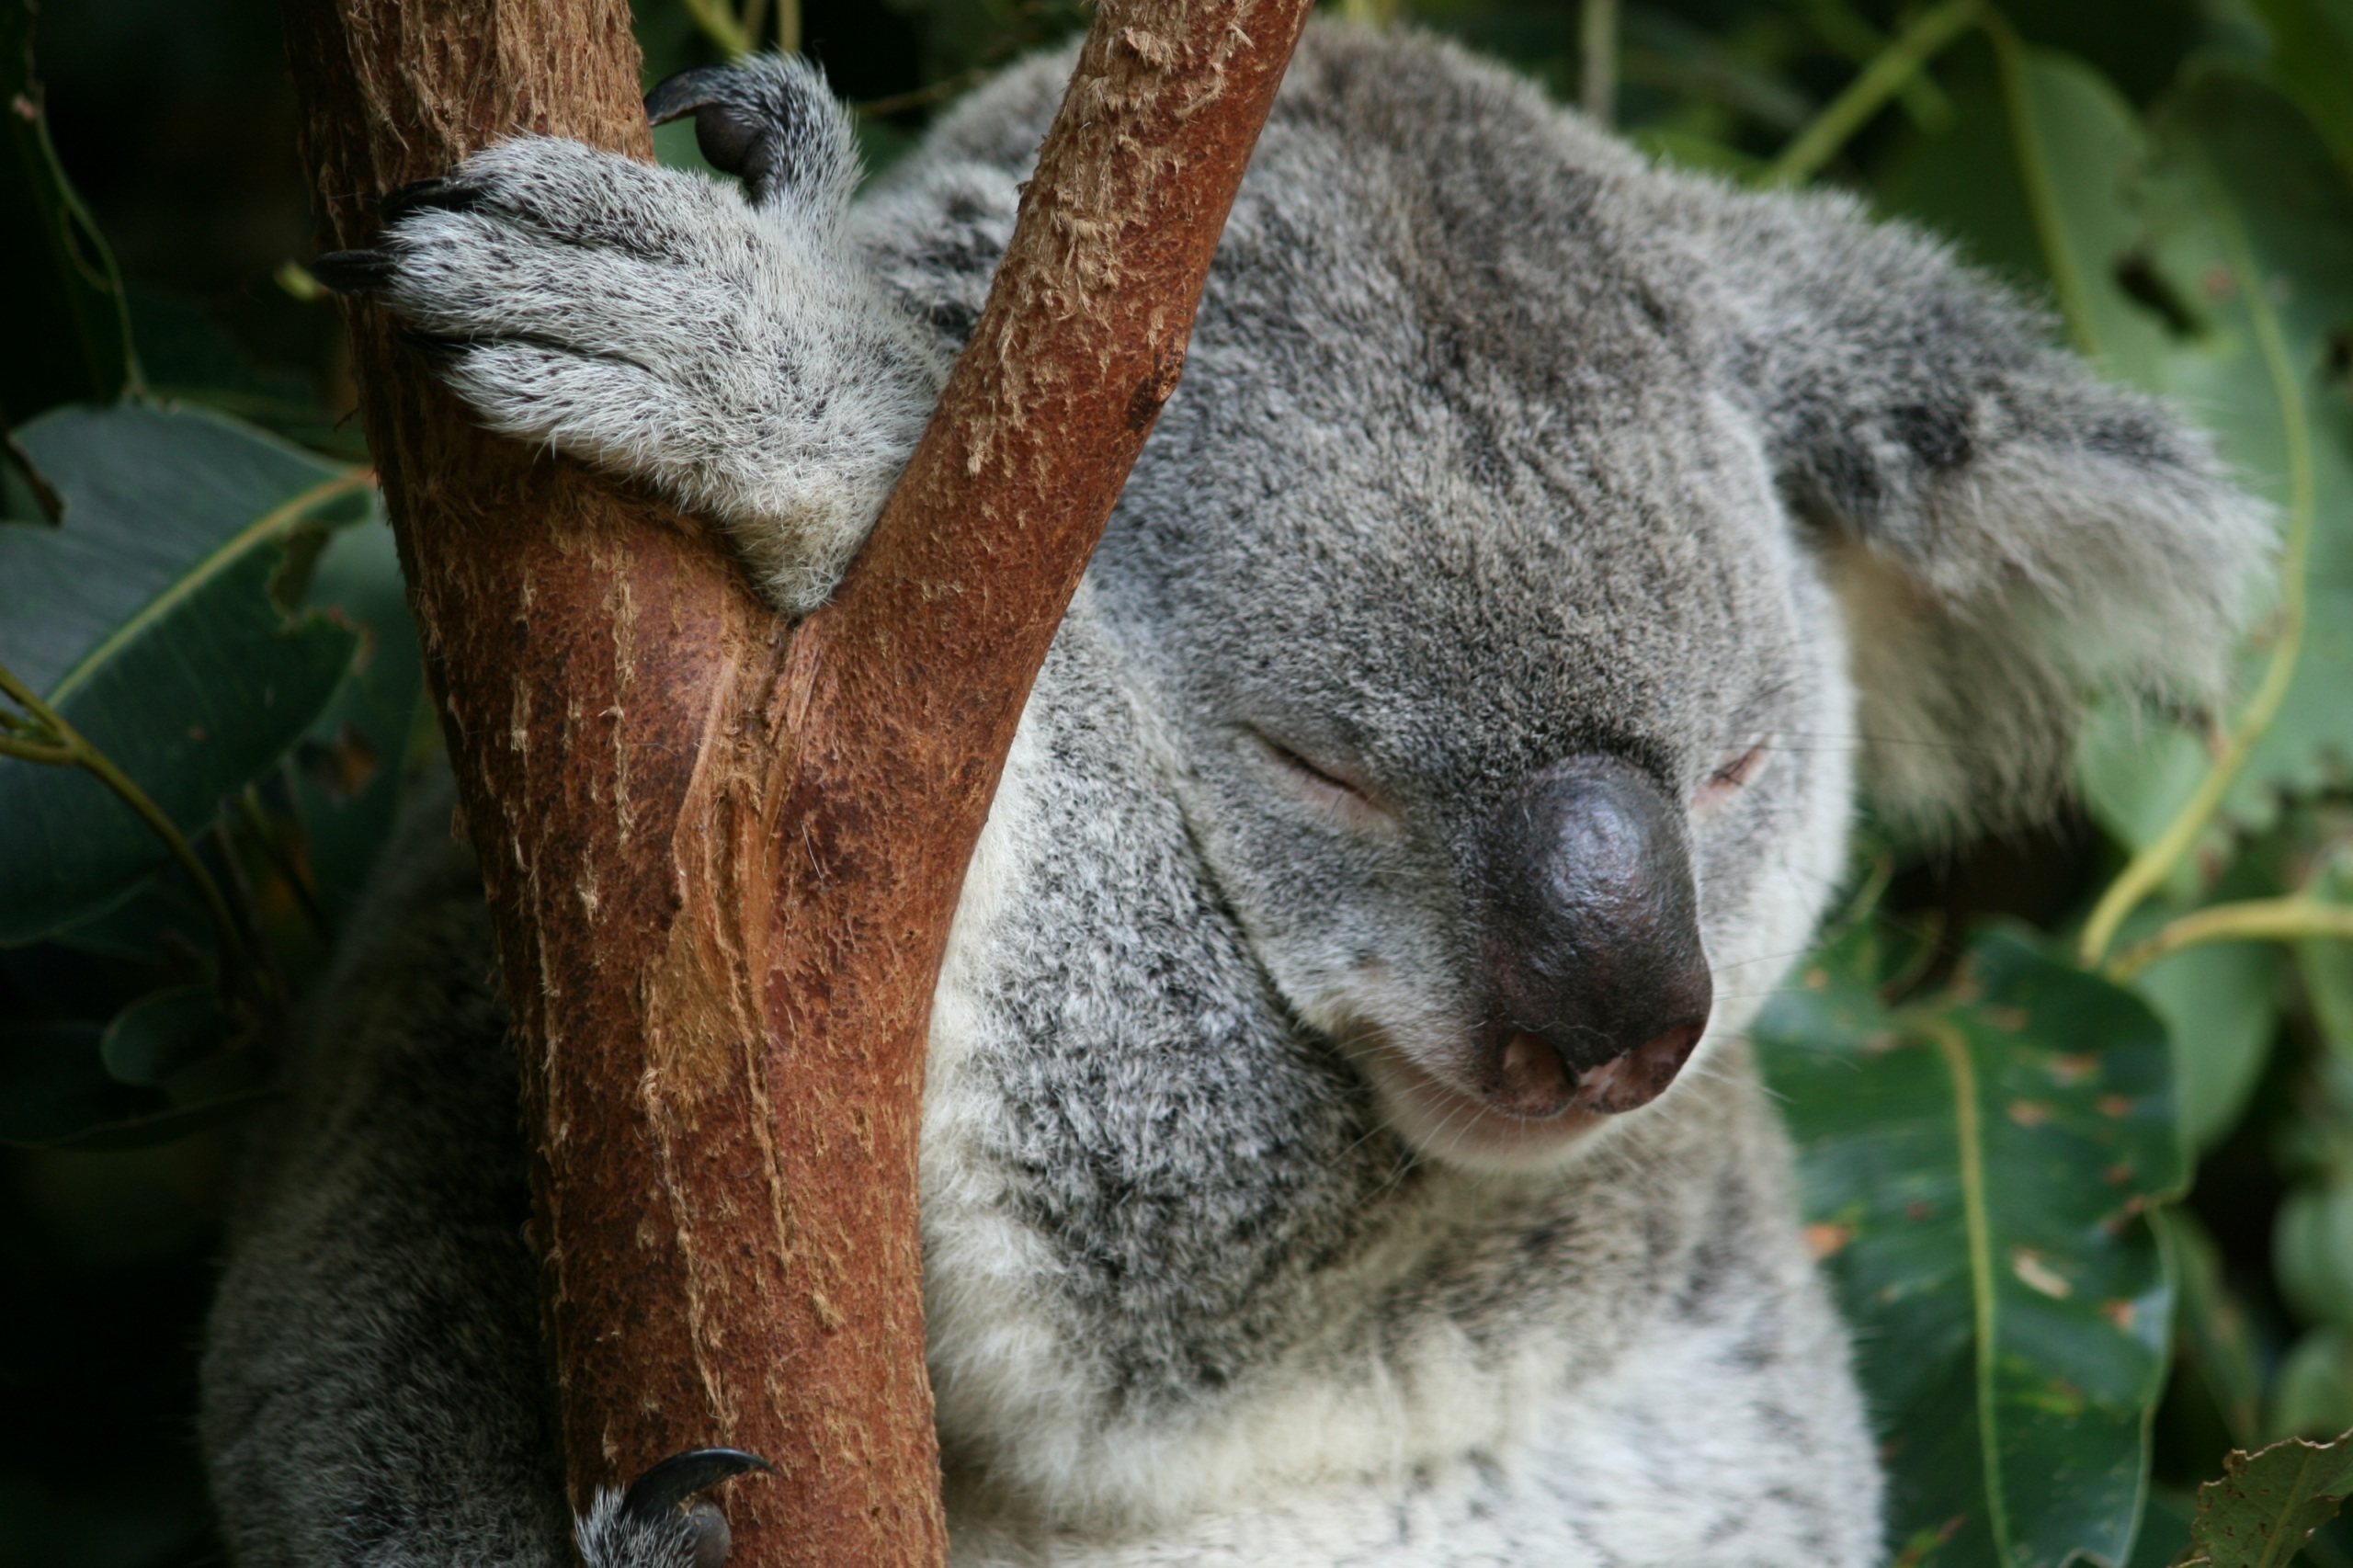 Koala sleeping in a tree